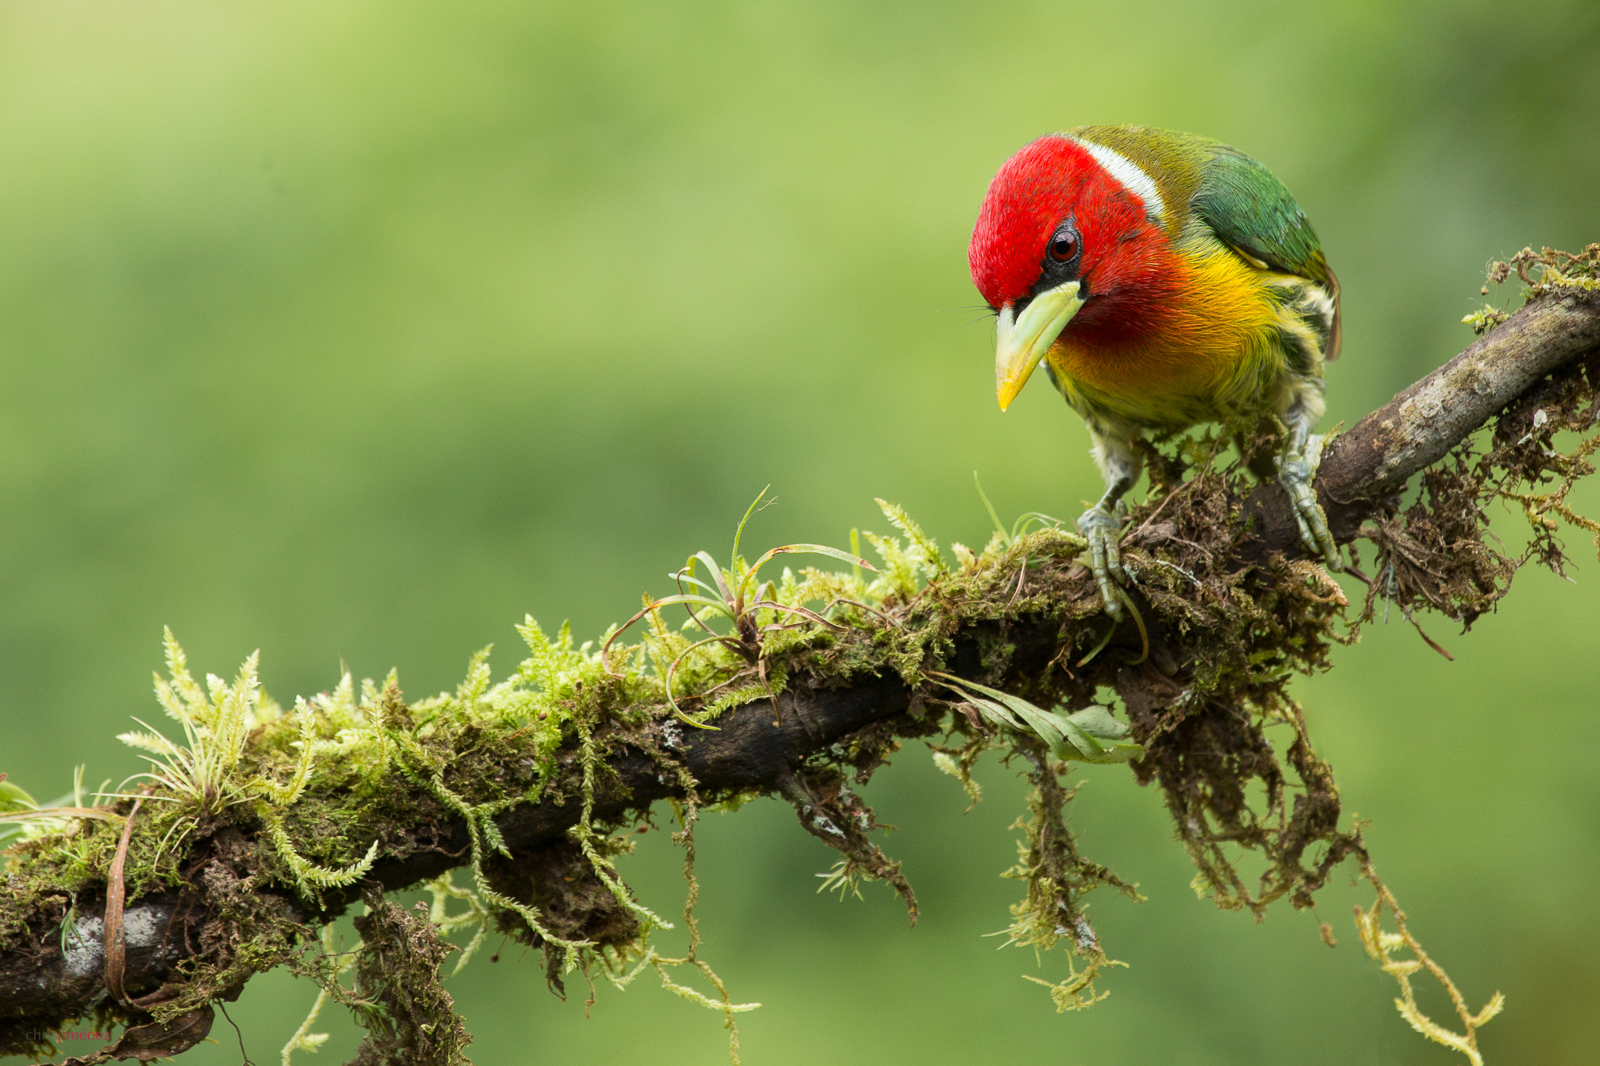 Red-headed barbet (Eubucco bourcierii) perched on a branch at the highlands of Costa Rica, Cinchona, http://www.chrisjimenez.net